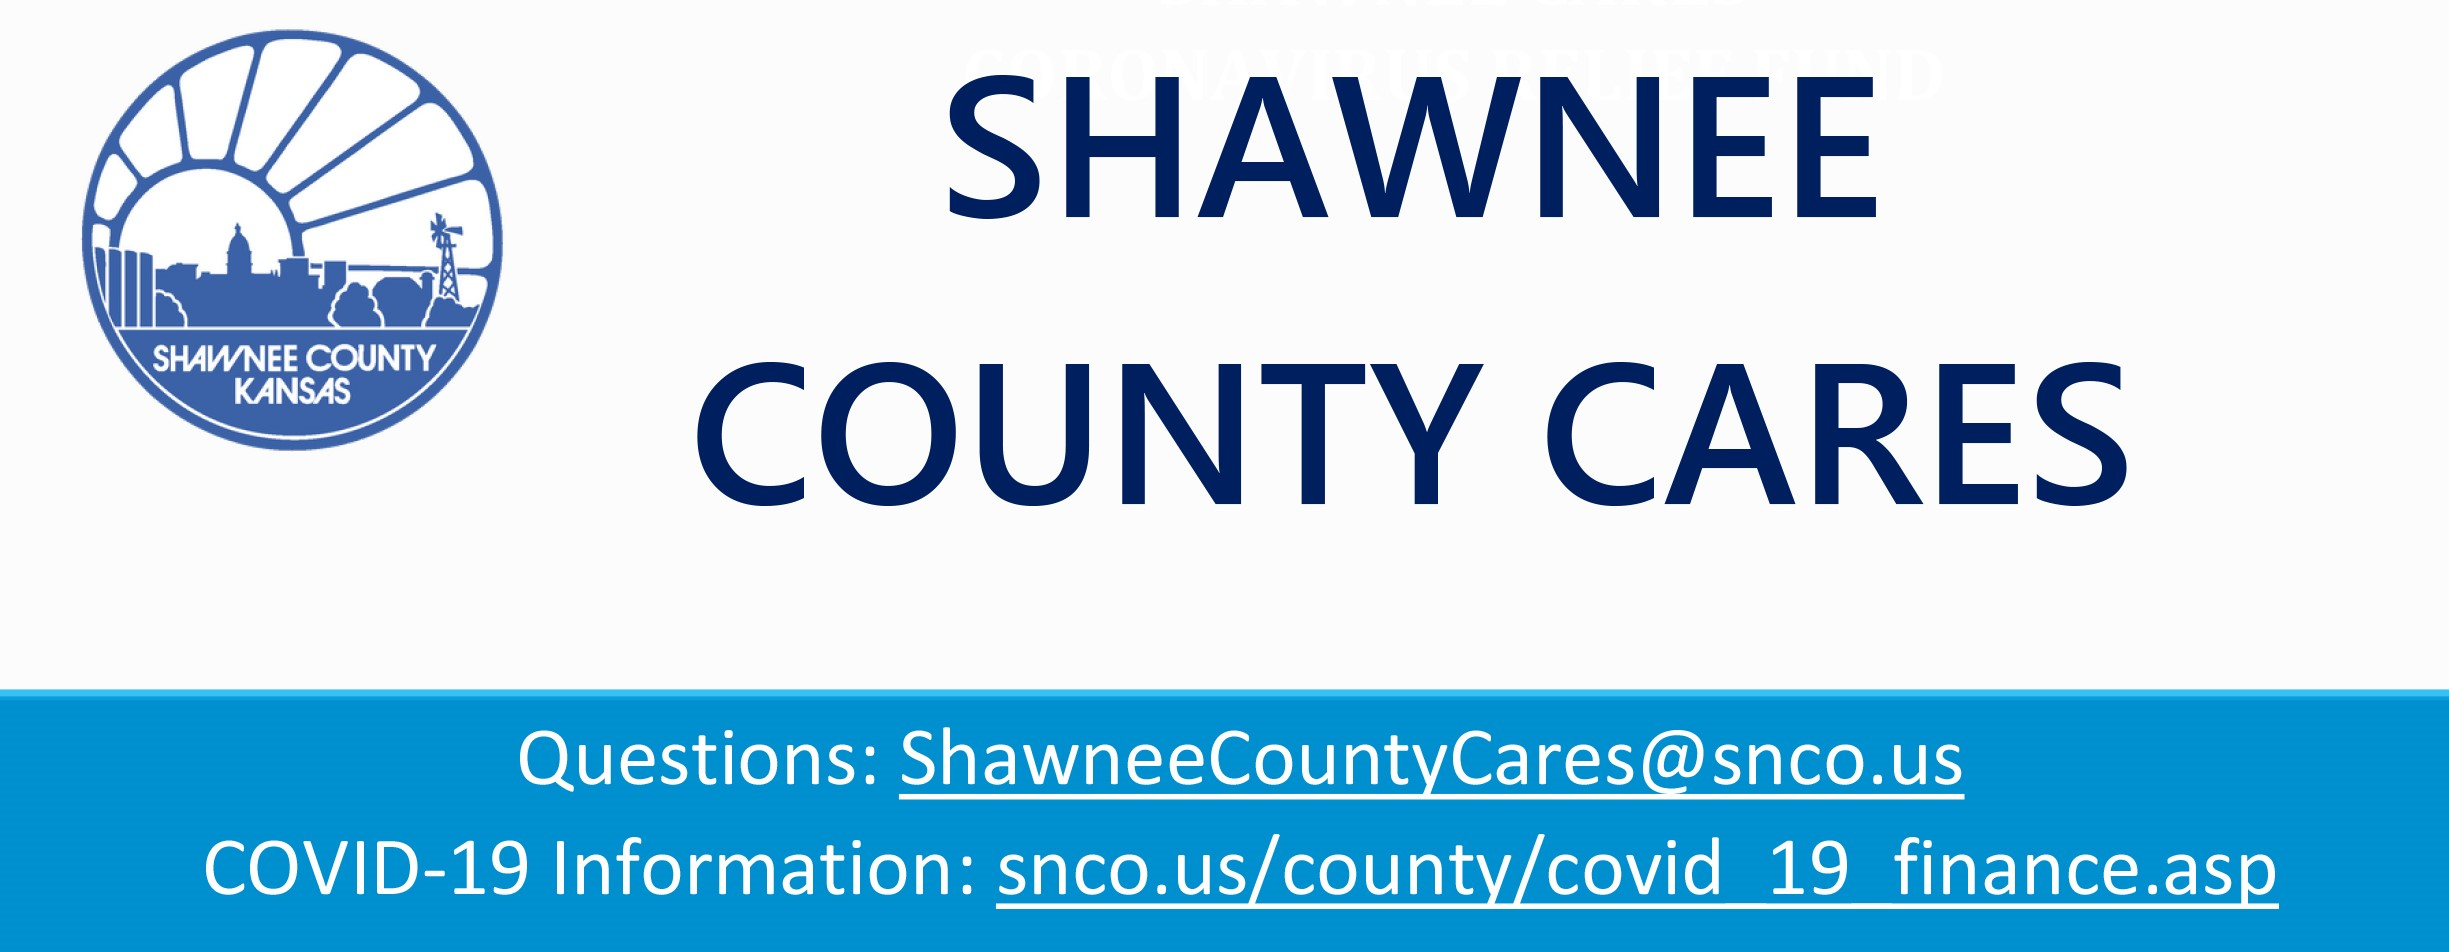 On August 13, the Shawnee County Board of Commissioners approved an allocation plan for the Shawnee County Coronavirus Relief Fund (CRF) monies.  This plan allocates $5,514,572 for Community Based Programs.  This plan will be submitted to the Kansas Recovery Office for their approval.  The State has promised that all plans will be reviewed by September 15th.  If the plan is not approved by the State, the County will be given the opportunity to reallocate the funds and resubmit it to the State for reconsideration.    The Community Based Programs can include but are not limited to:  •	Support to area non-profits for re-opening measures;  •	Small business grant programs;  •	PPE to individuals, business and non-governmental entities;  •	Food security programs; and •	Other essential service providers in the community who are unable to access State and Federal level programs